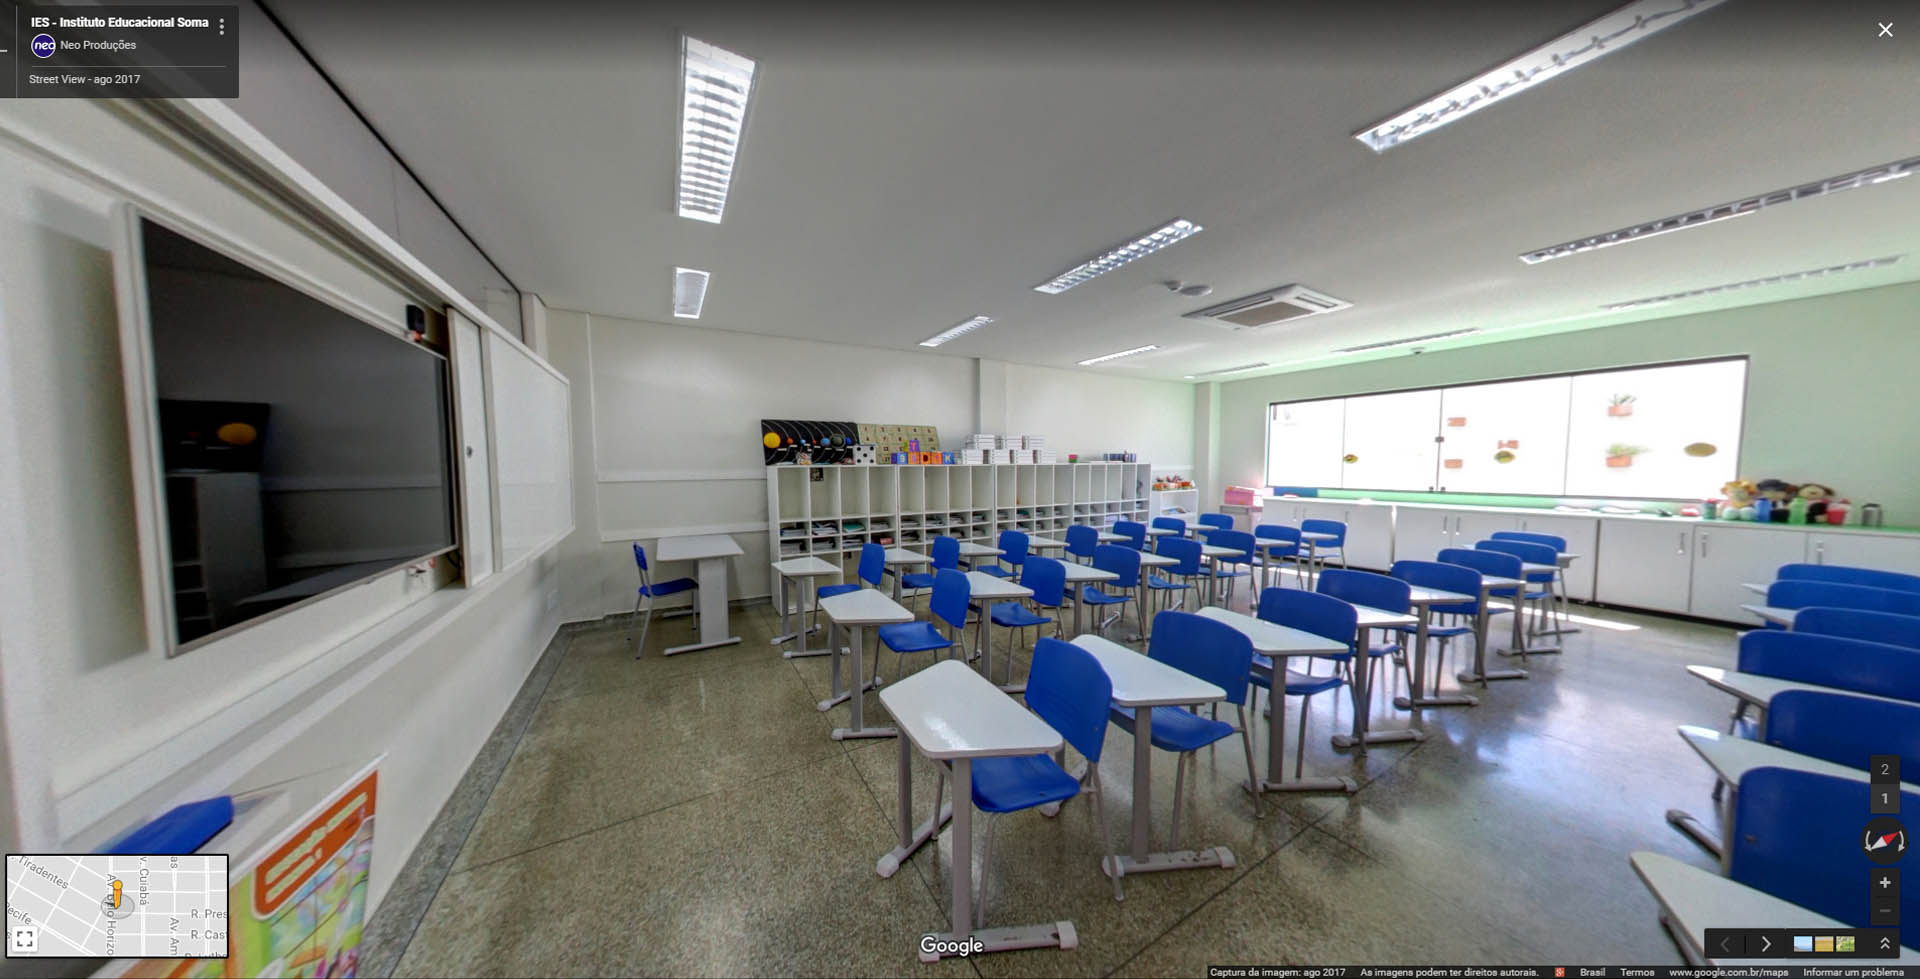 IES - Instituto Educacional Soma